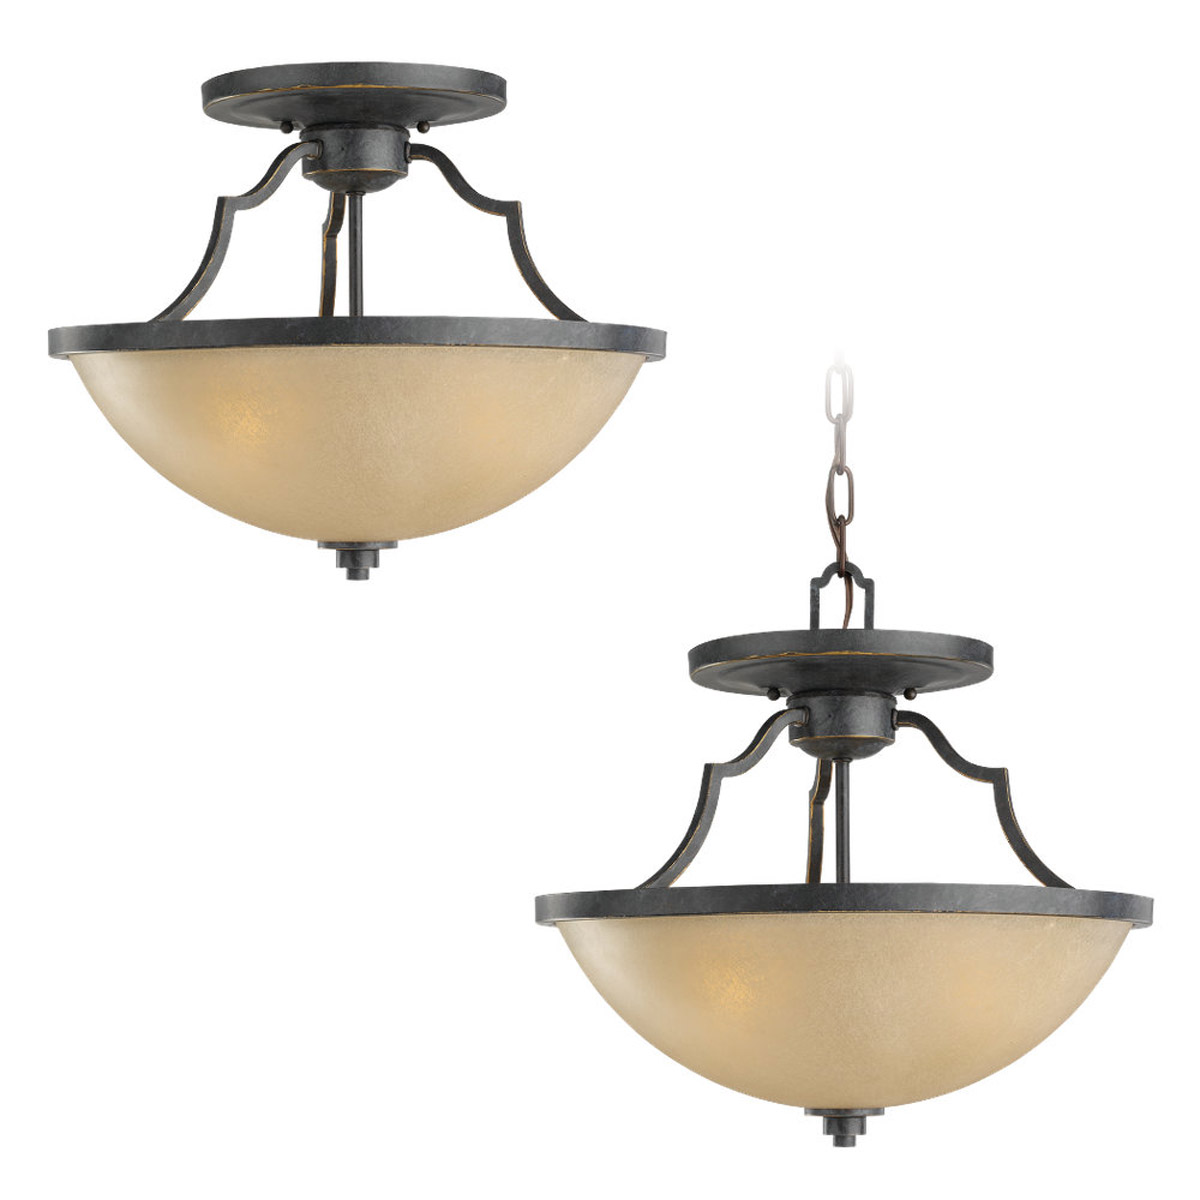 Sea Gull 77520-845 Roslyn 3 Light 16 inch Flemish Bronze Semi-Flush Mount Ceiling Light photo